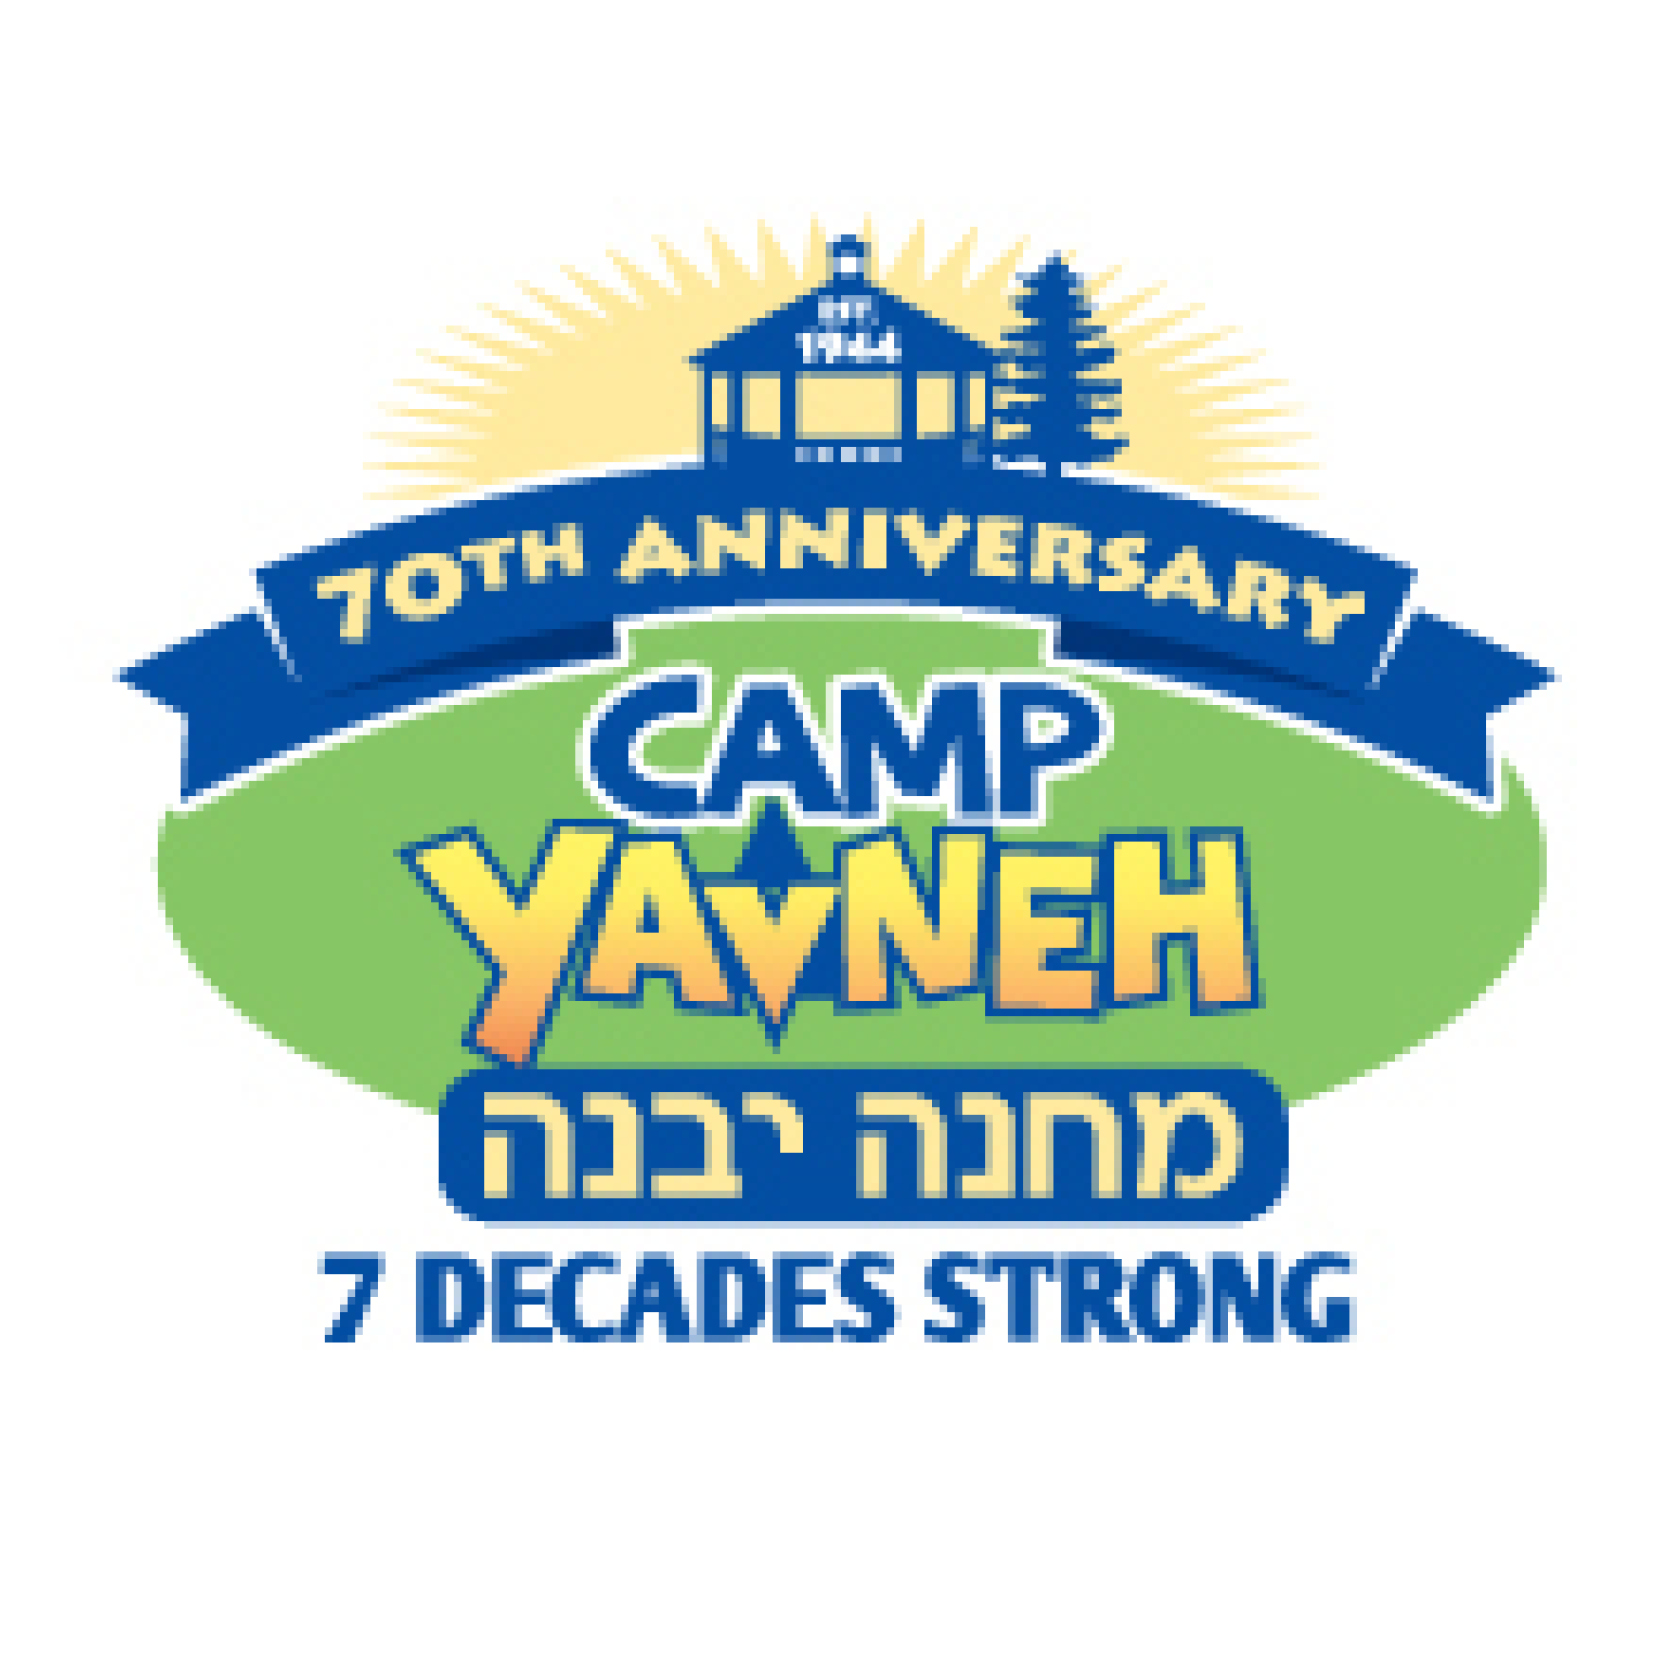 Camp Yavneh Family Camp Organizer Camp Yavneh